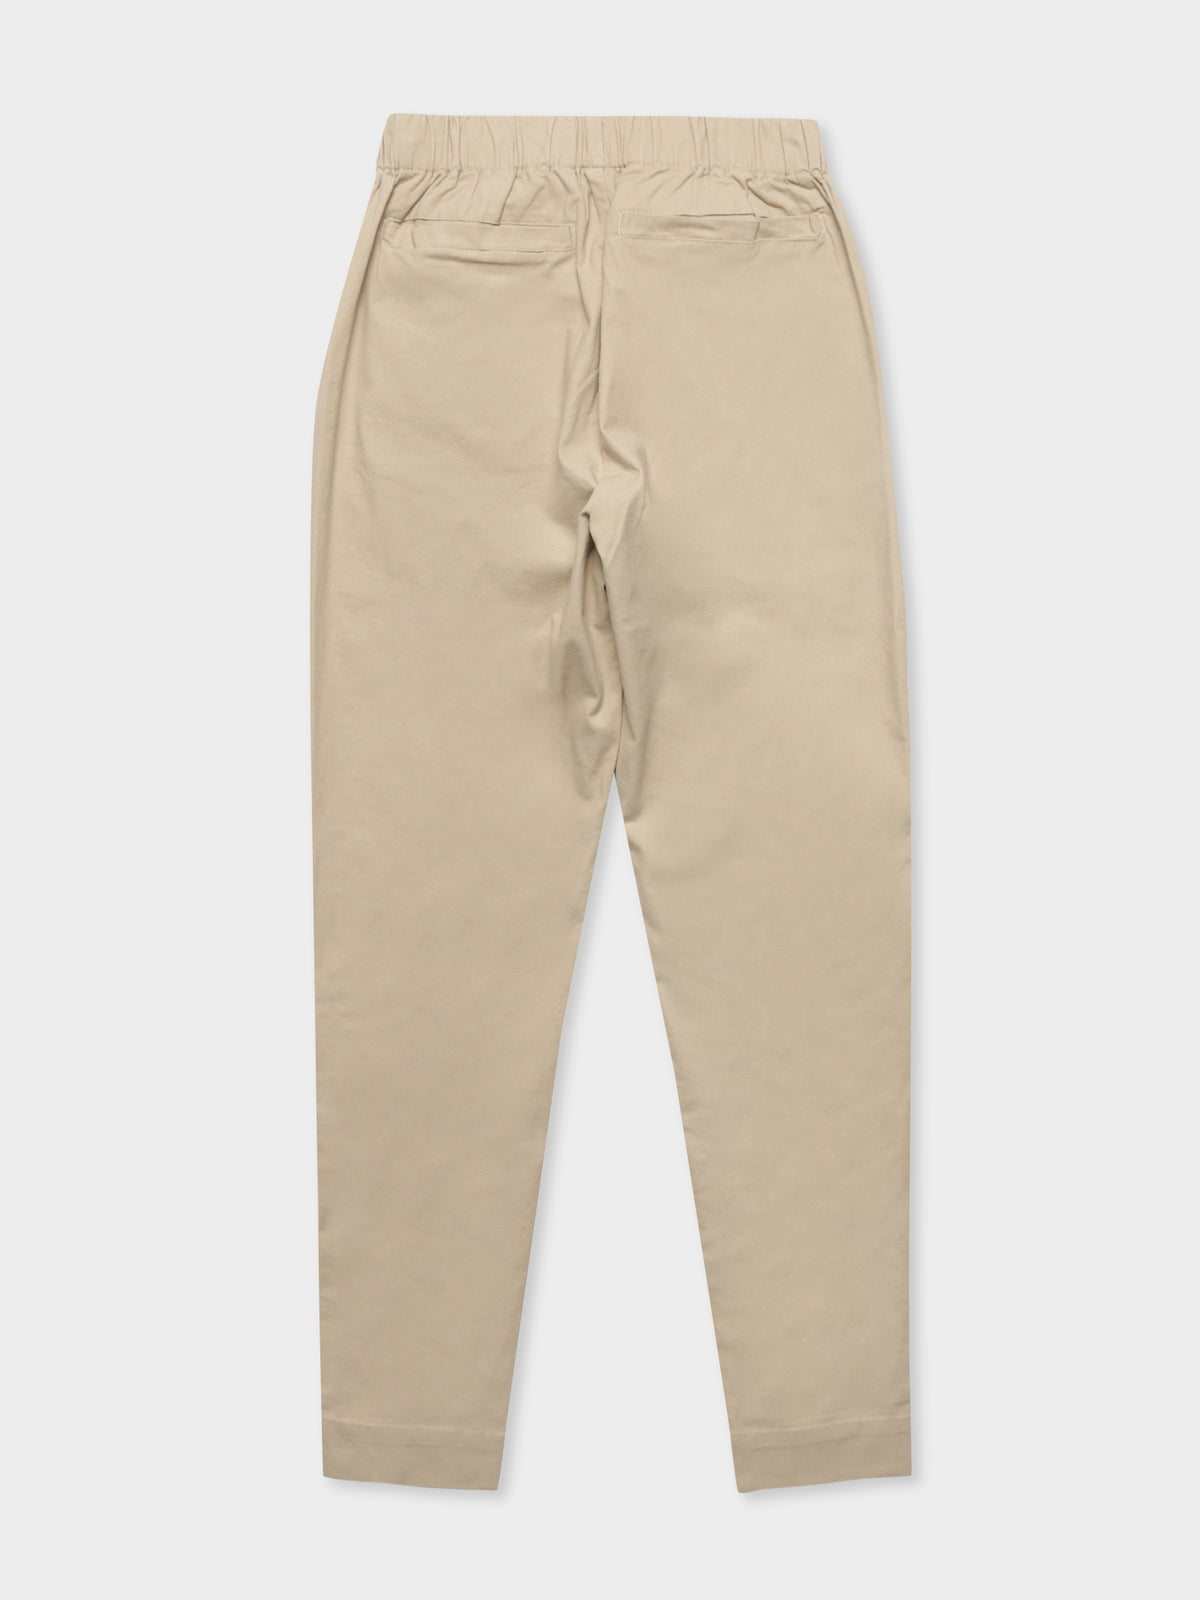 Pitfield Relaxed Track Pants in Sand